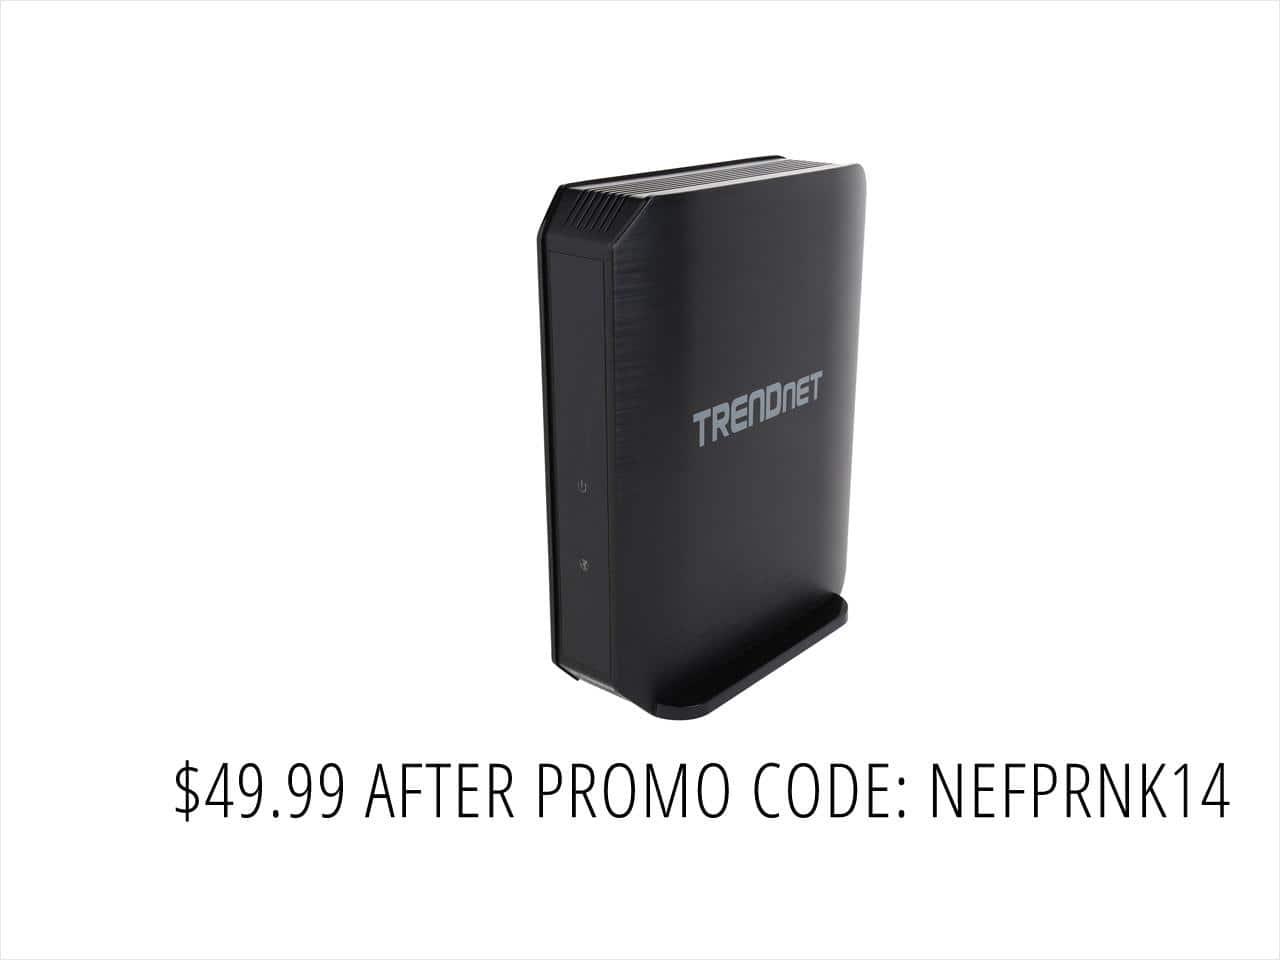 TRENDnet TEW-824DRU AC1750 Dual Band Wireless Router with StreamBoost $50AC @NF 5-port GreenNet GbE Switch $15AC